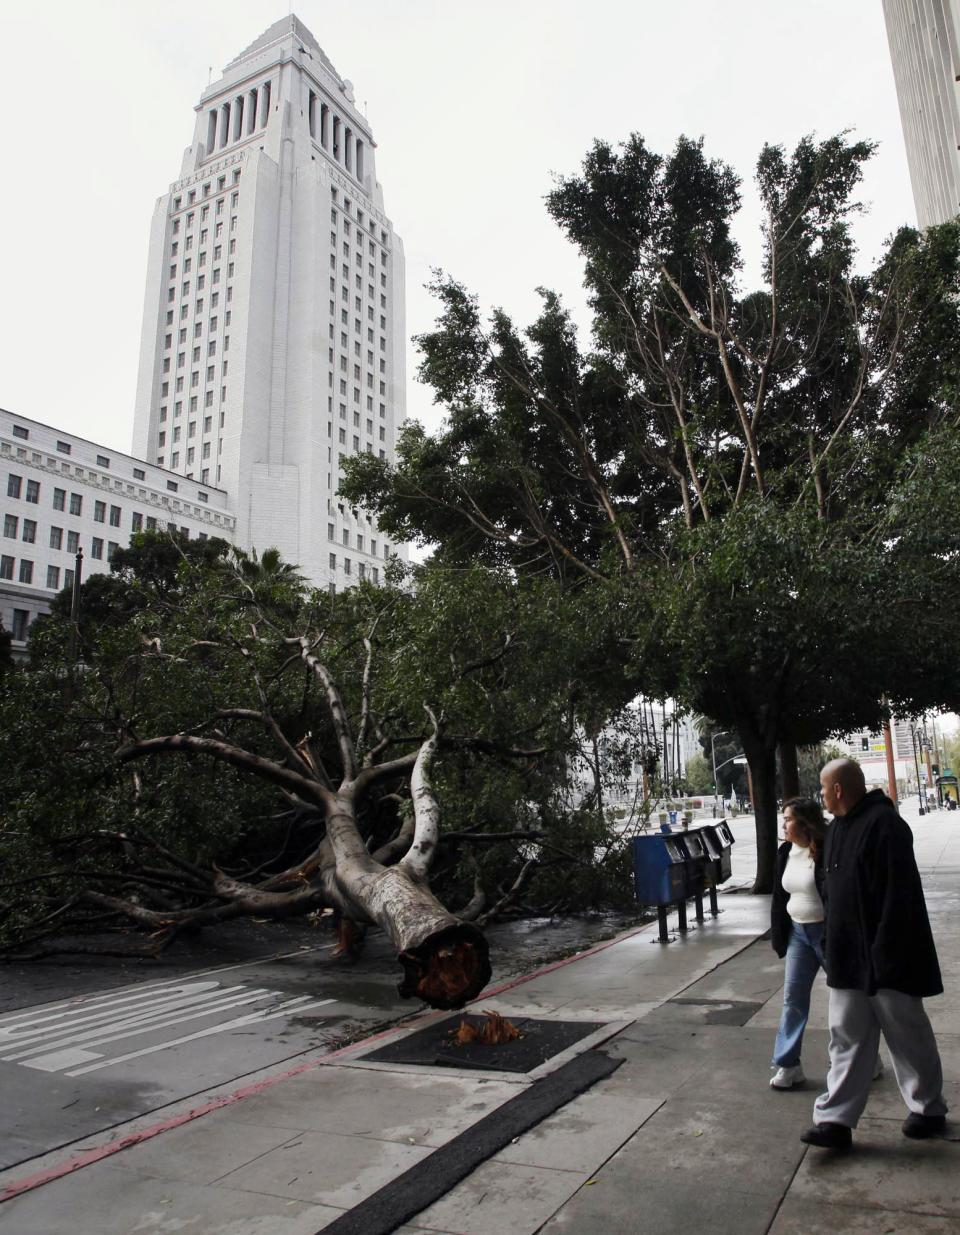 Pedestrians walk past a fallen tree near the Los Angeles City Hall after a storm swept through southern California on Monday, March 21, 2011. The weather was moving out of the region and flood advisories were canceled for Los Angeles County, but the weather service warned that debris flows and flash flooding in some areas were still possible. (AP Photo/Nick Ut)